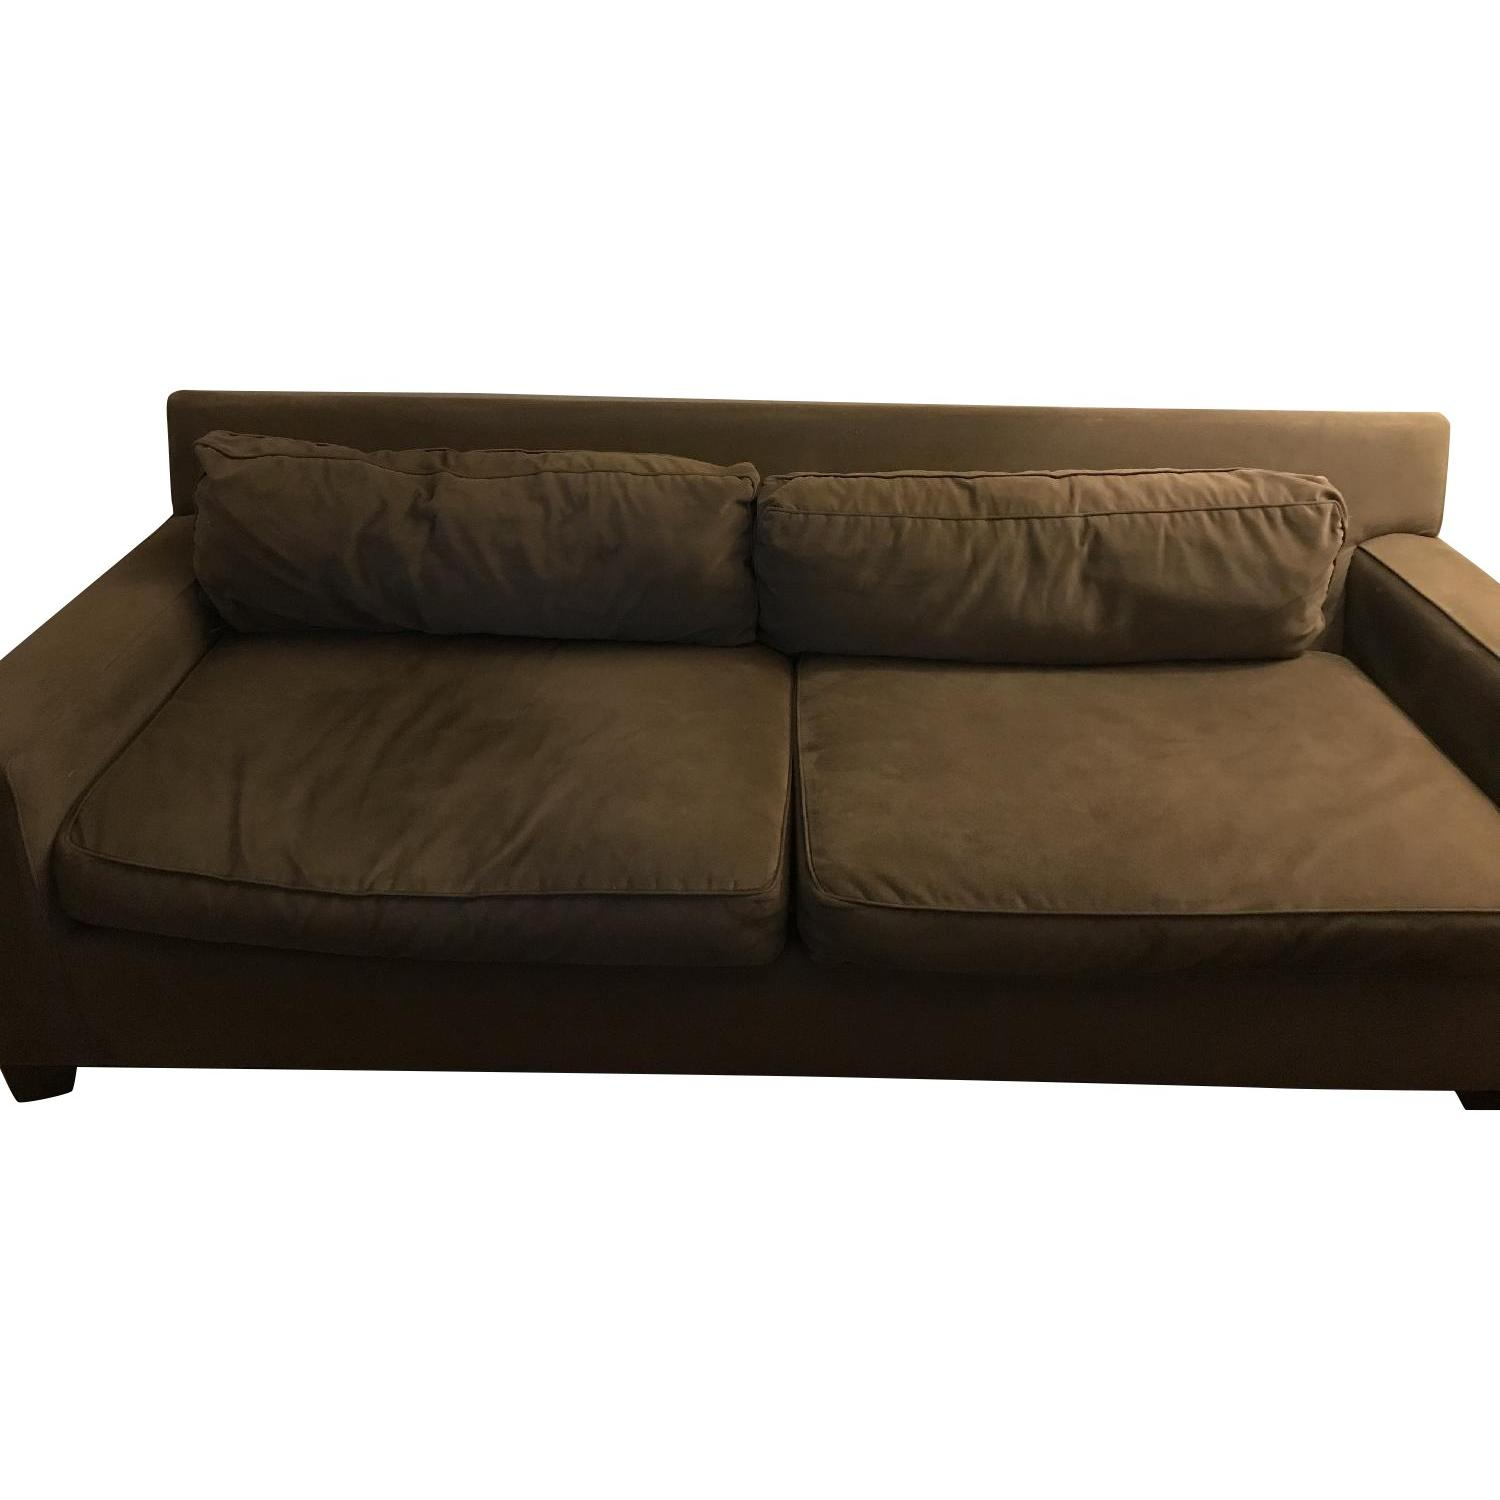 West Elm Microsuede Sofa ...